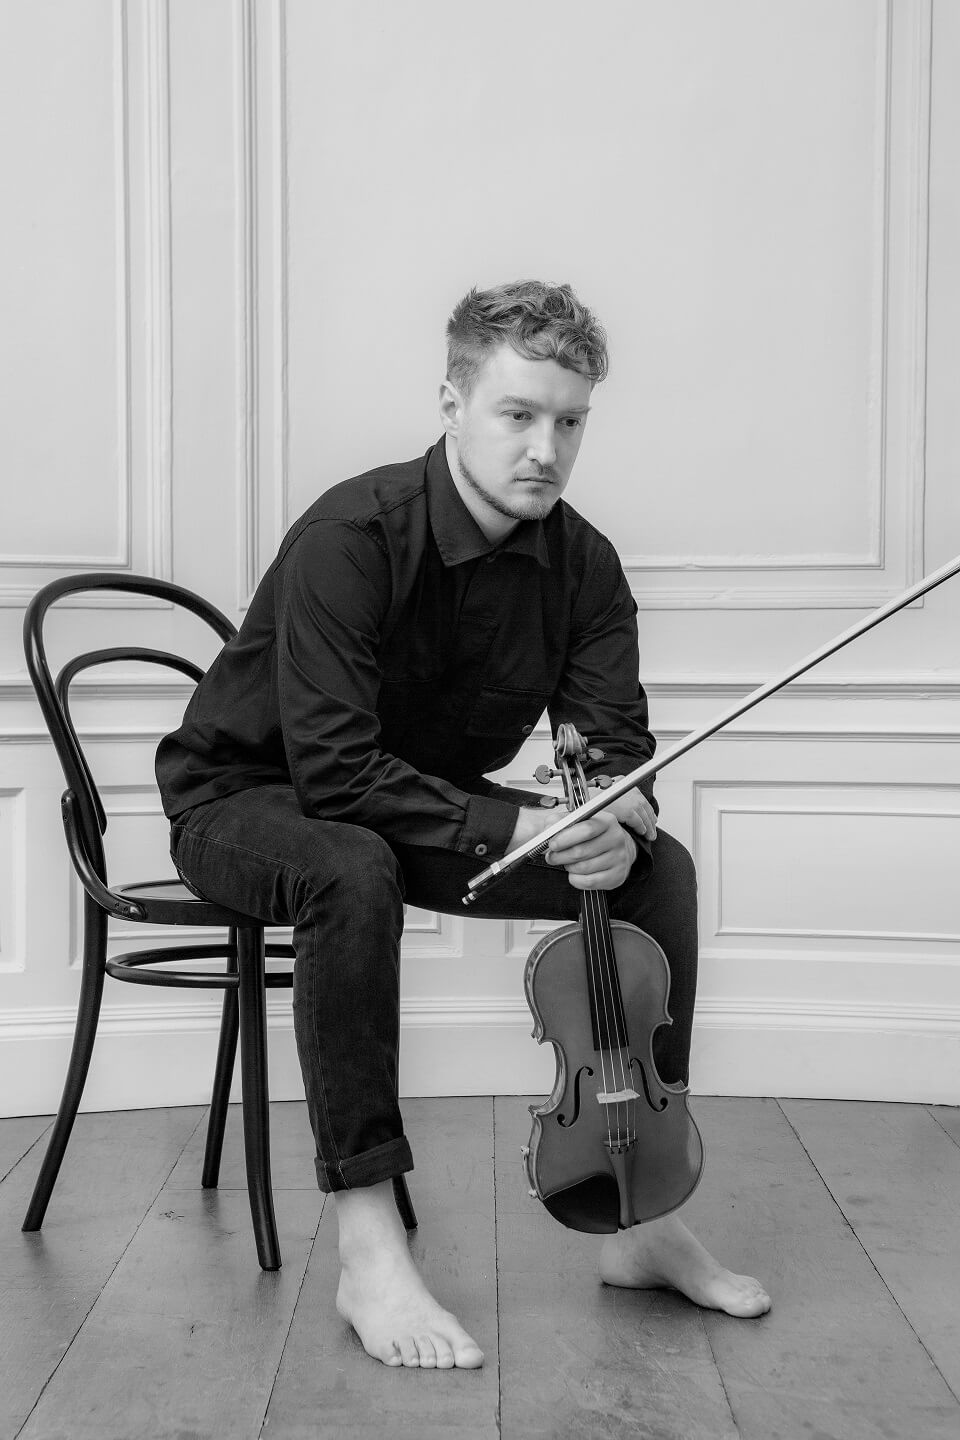 B&W image of Daniel Pioro wearing a black shirt and trousers sitting on a bistro chair, with violin and bow in his hands